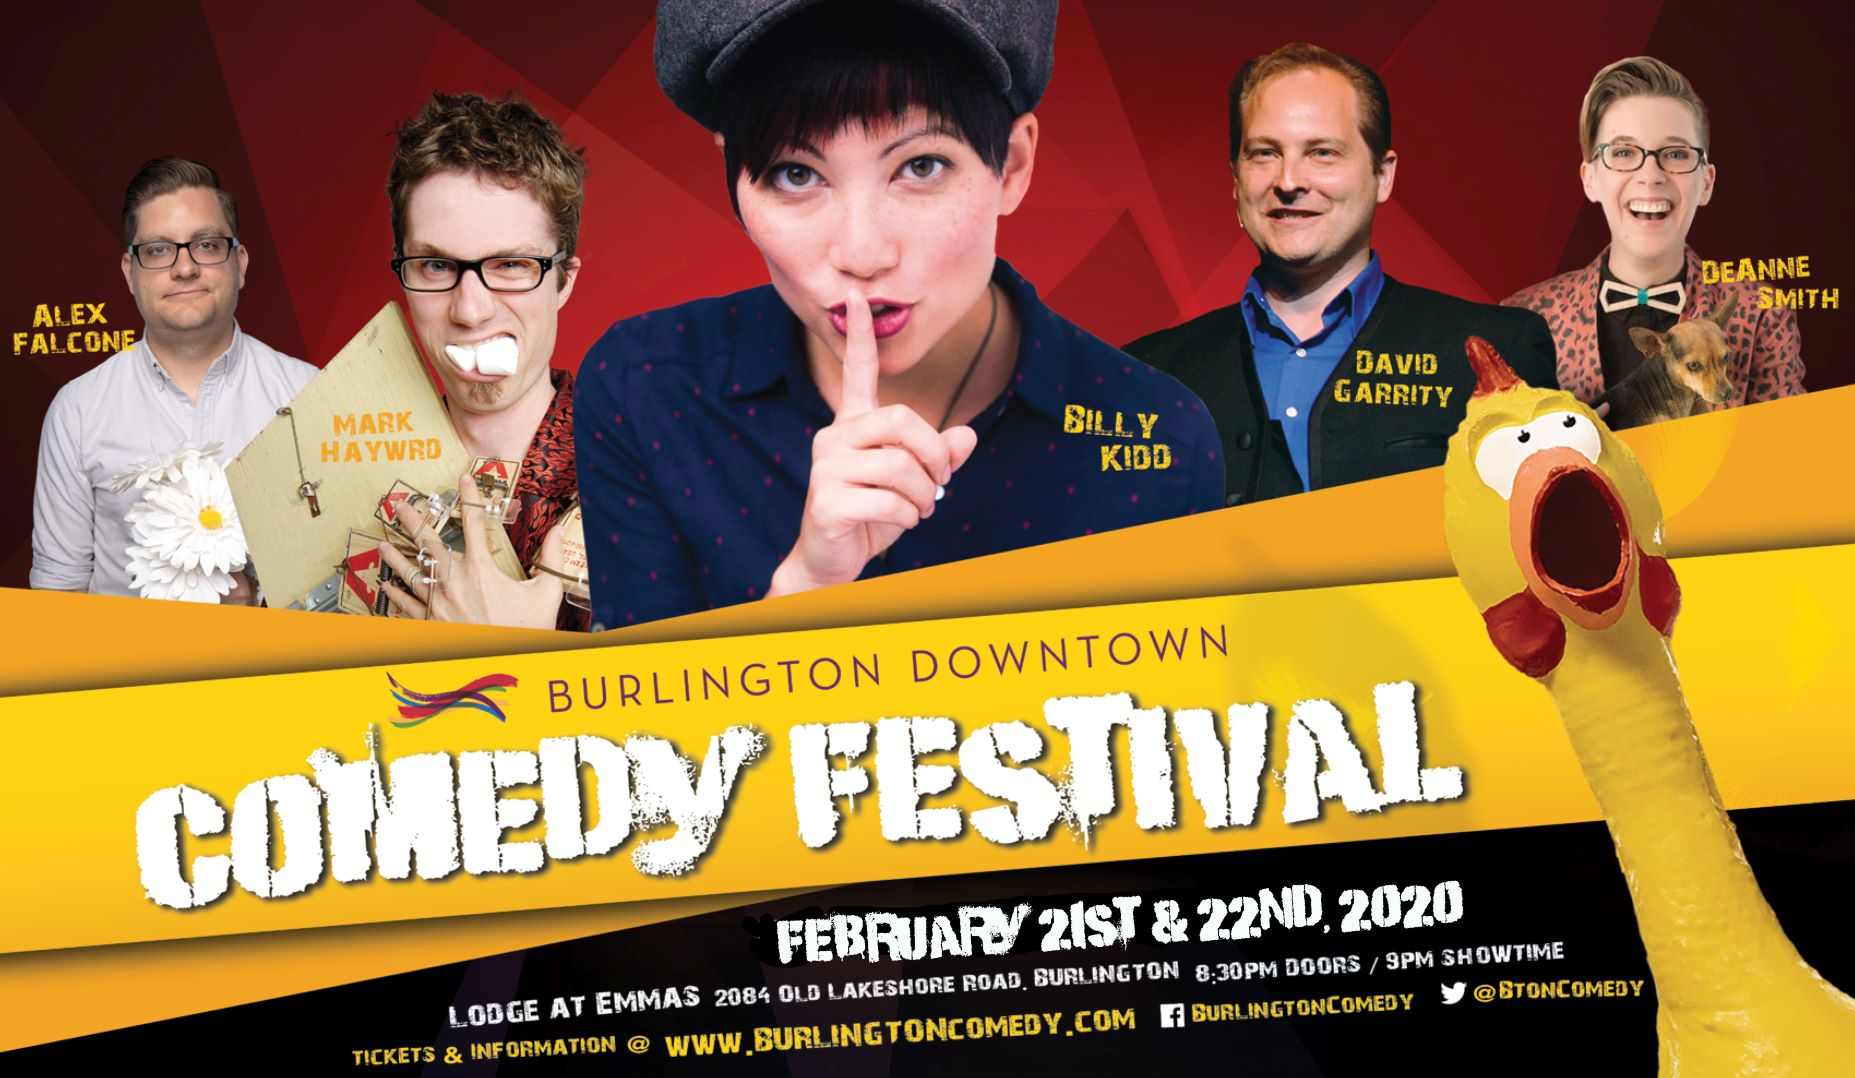 Comedy Cabaret featuring Billy Kidd